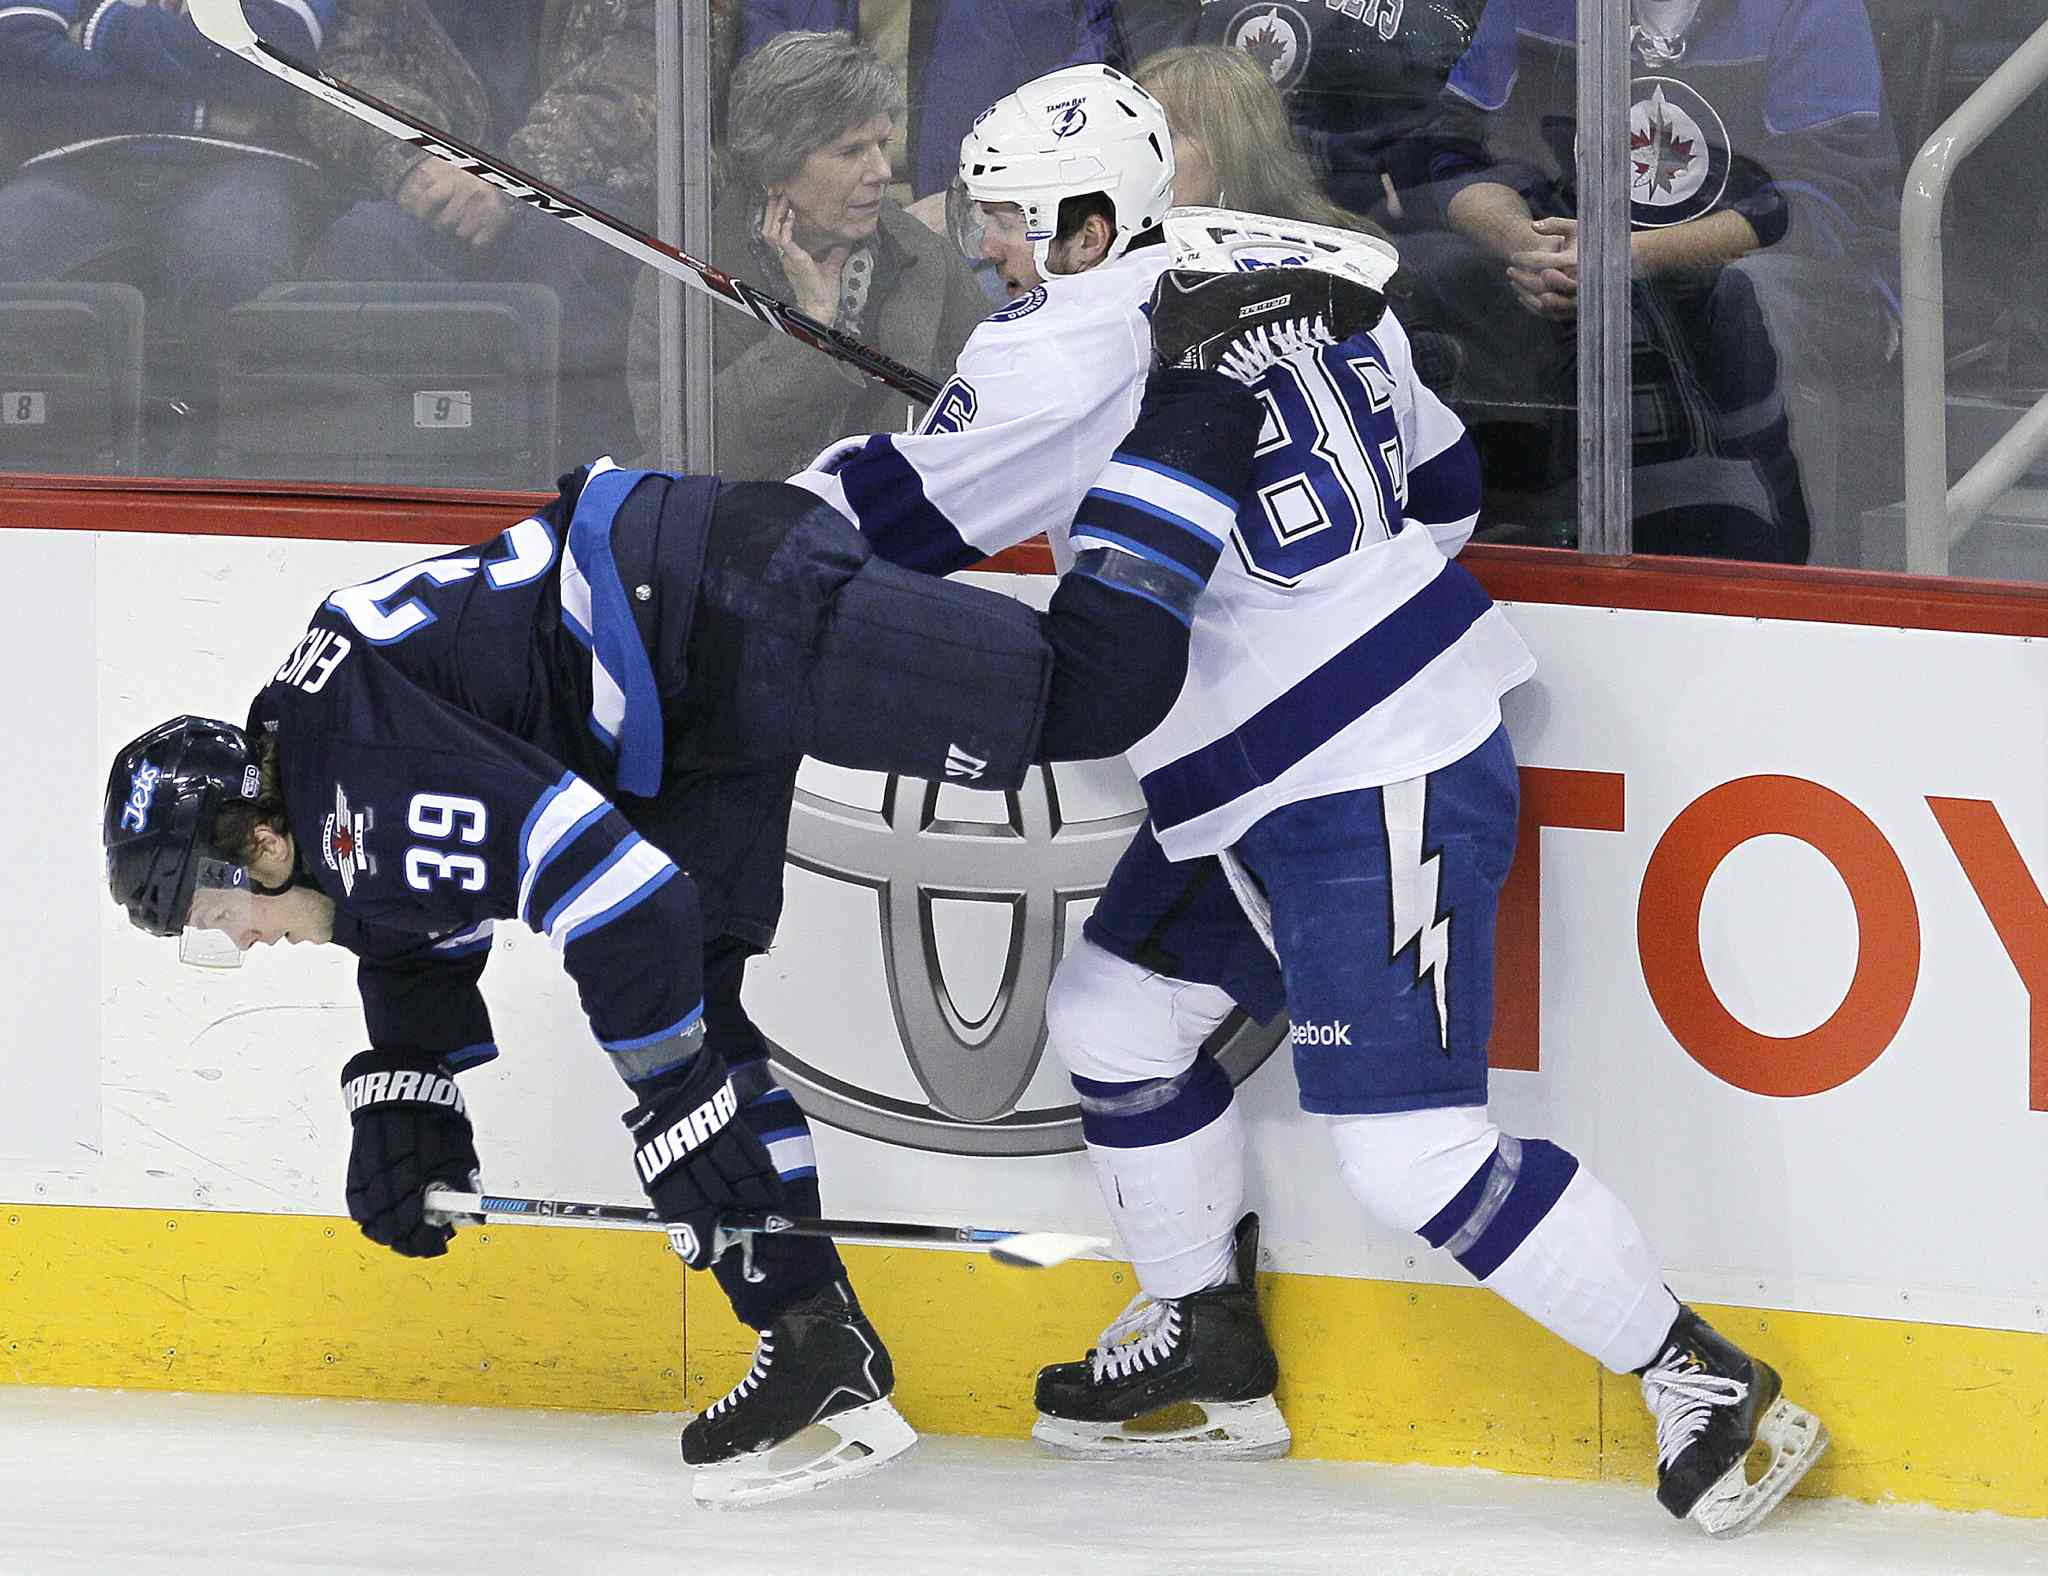 Winnipeg Jets' Tobias Enstrom (39) is checked by Tampa Bay Lightning's Nikita Kucherov (86) during the first period Tuesday.